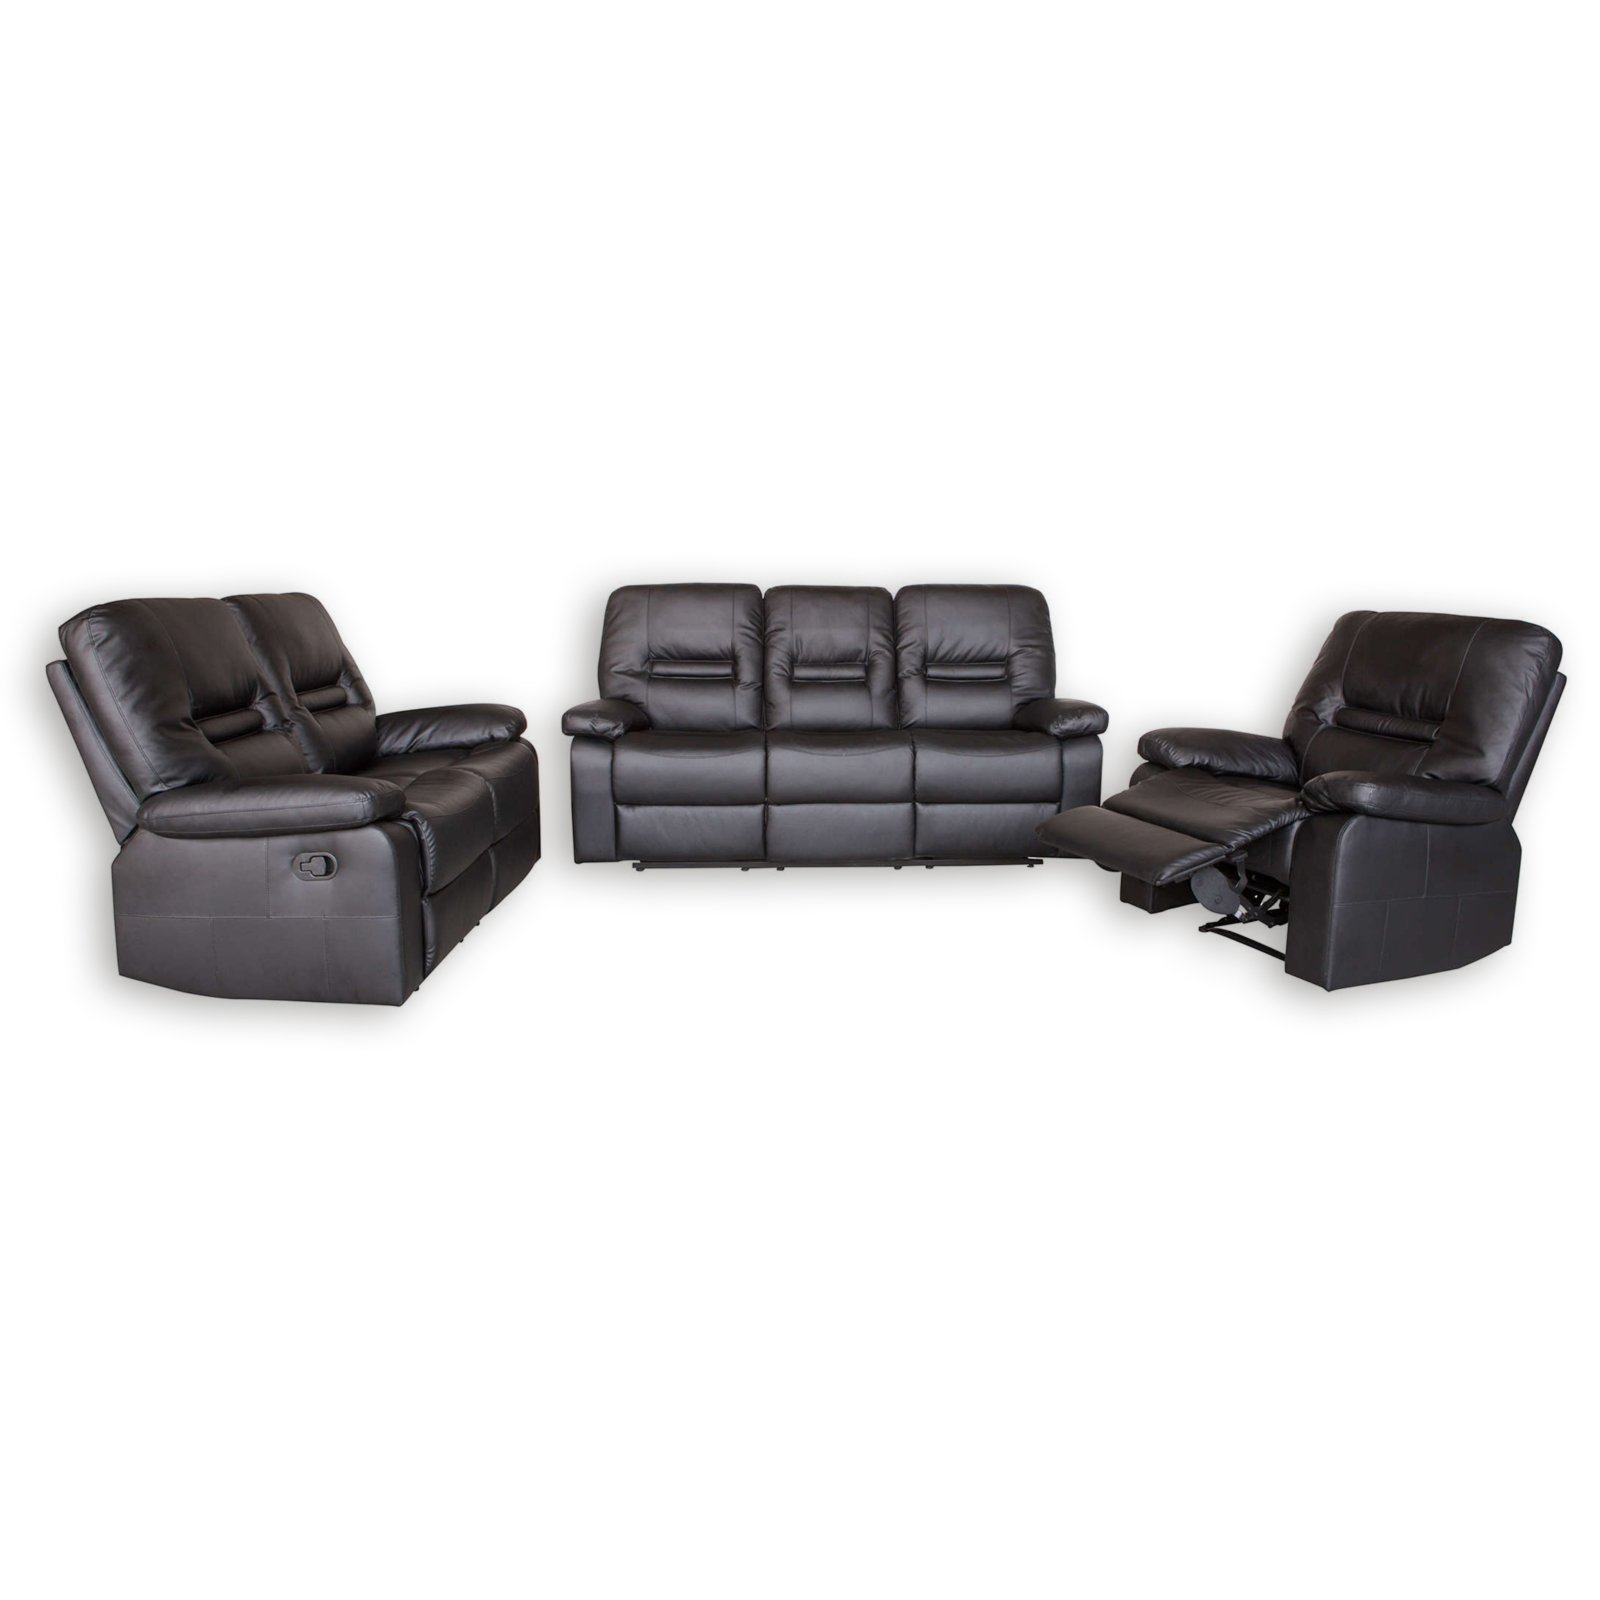 3 teiliges sofa m belideen. Black Bedroom Furniture Sets. Home Design Ideas